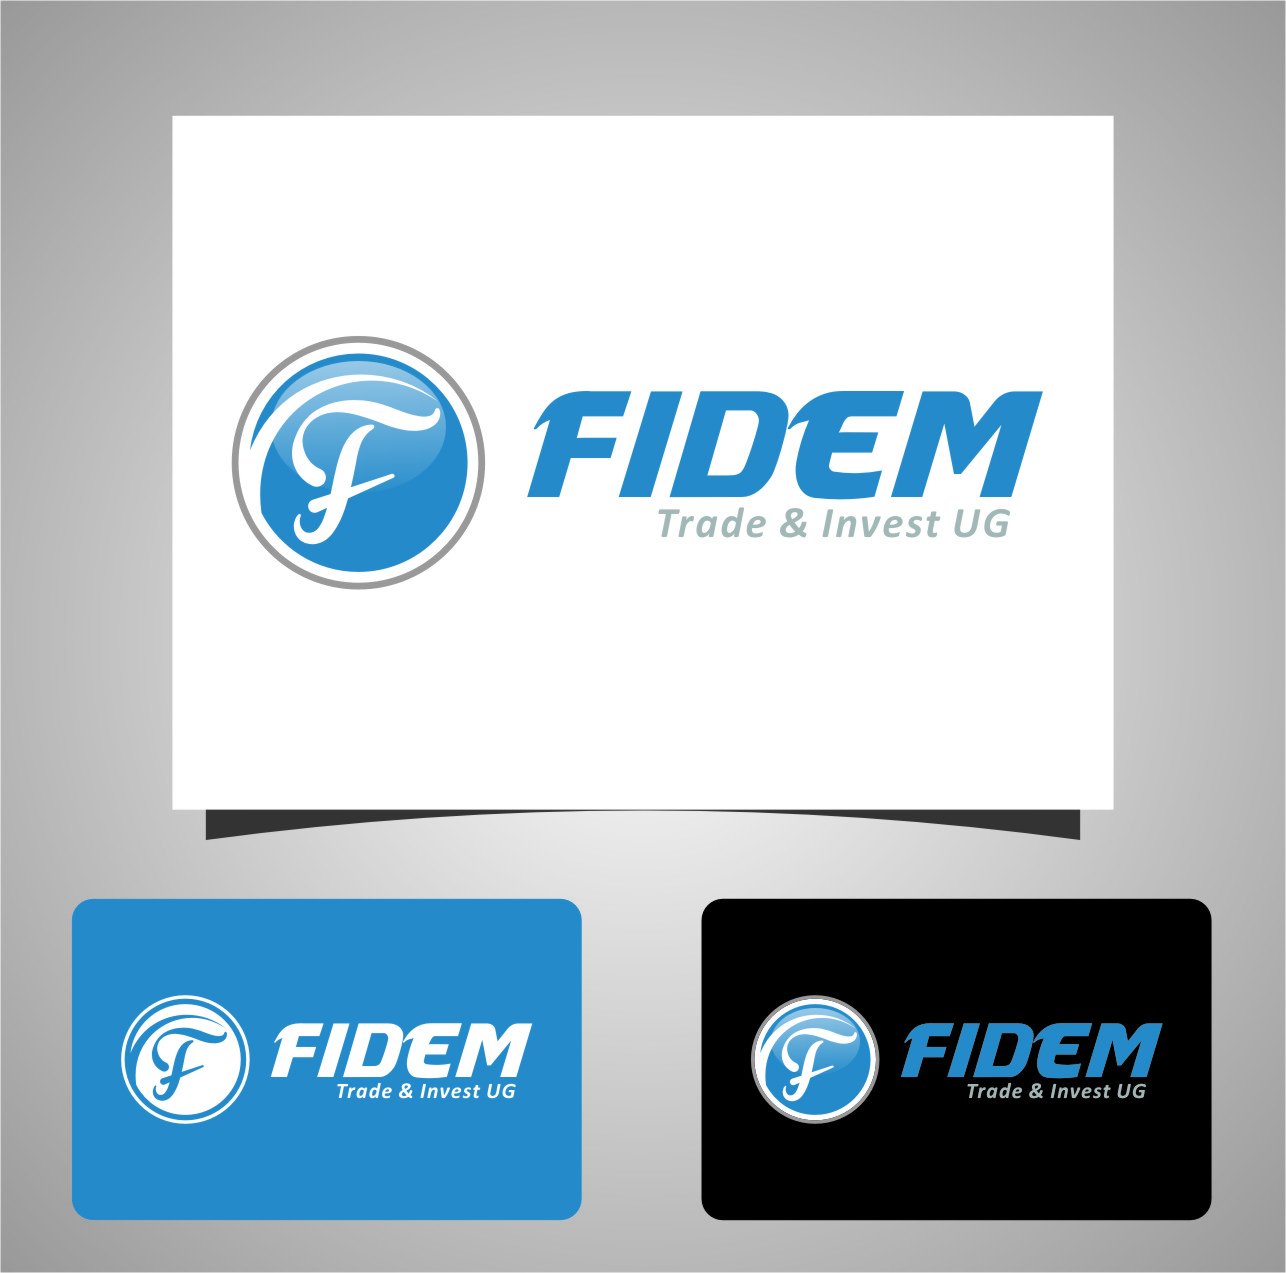 Logo Design by RasYa Muhammad Athaya - Entry No. 735 in the Logo Design Contest Professional Logo Design for FIDEM Trade & Invest UG.